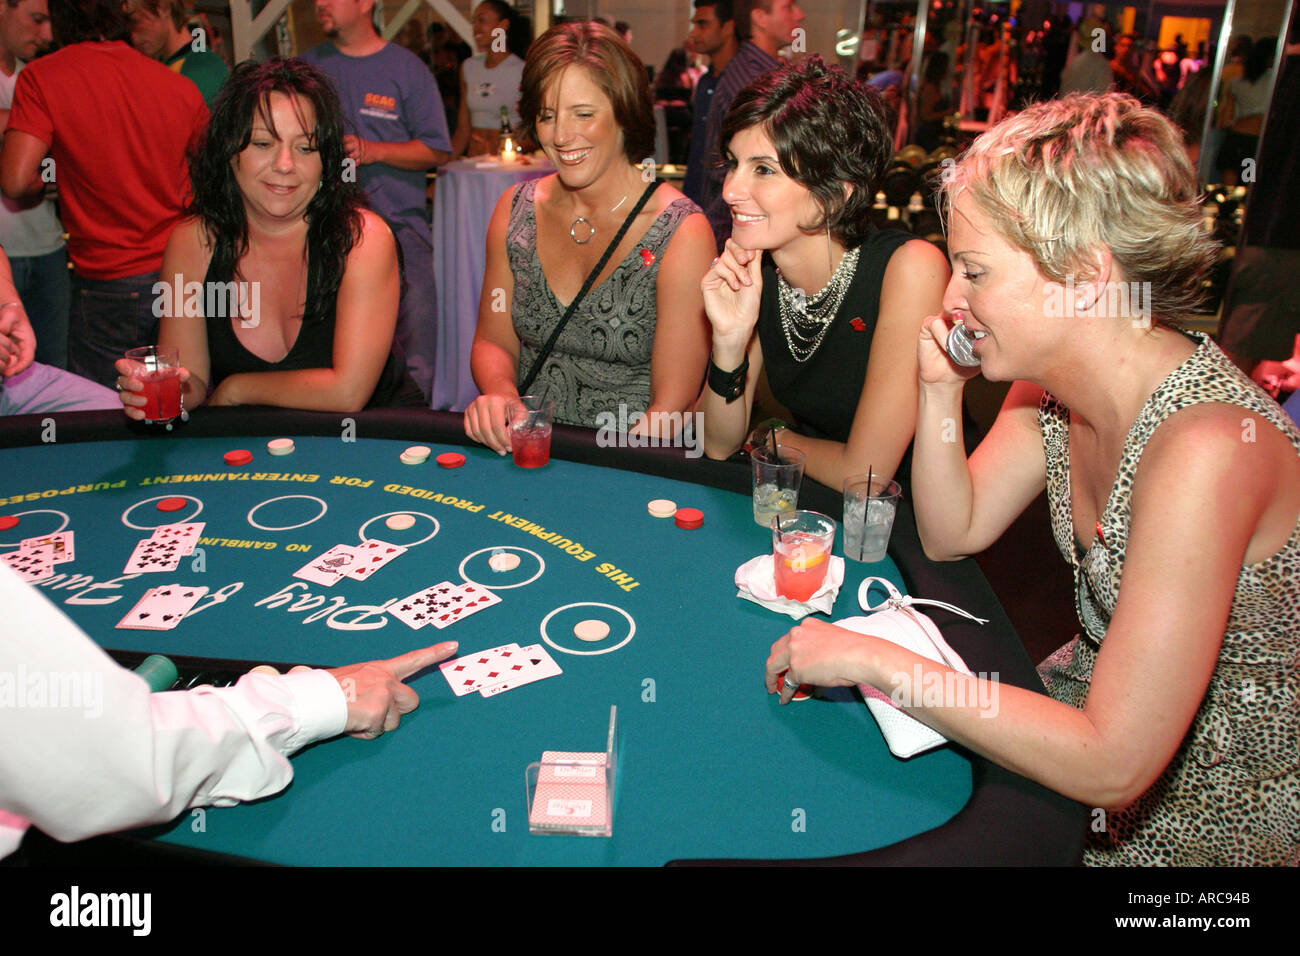 South florida casinos with blackjack aquarius resort and casino